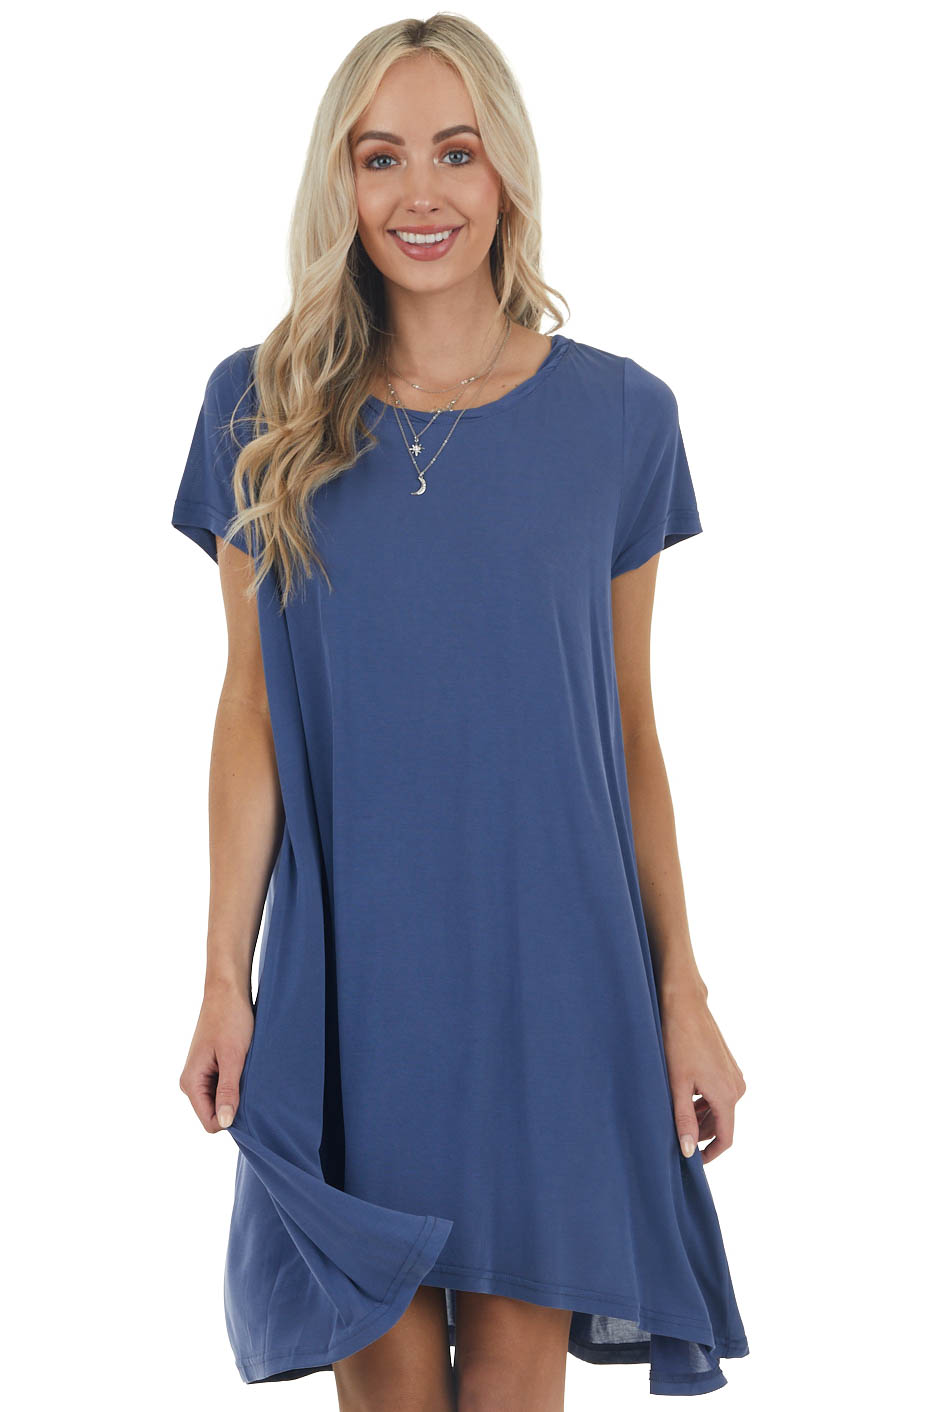 Navy Stretchy Knit Short Swing Dress with Short Sleeves